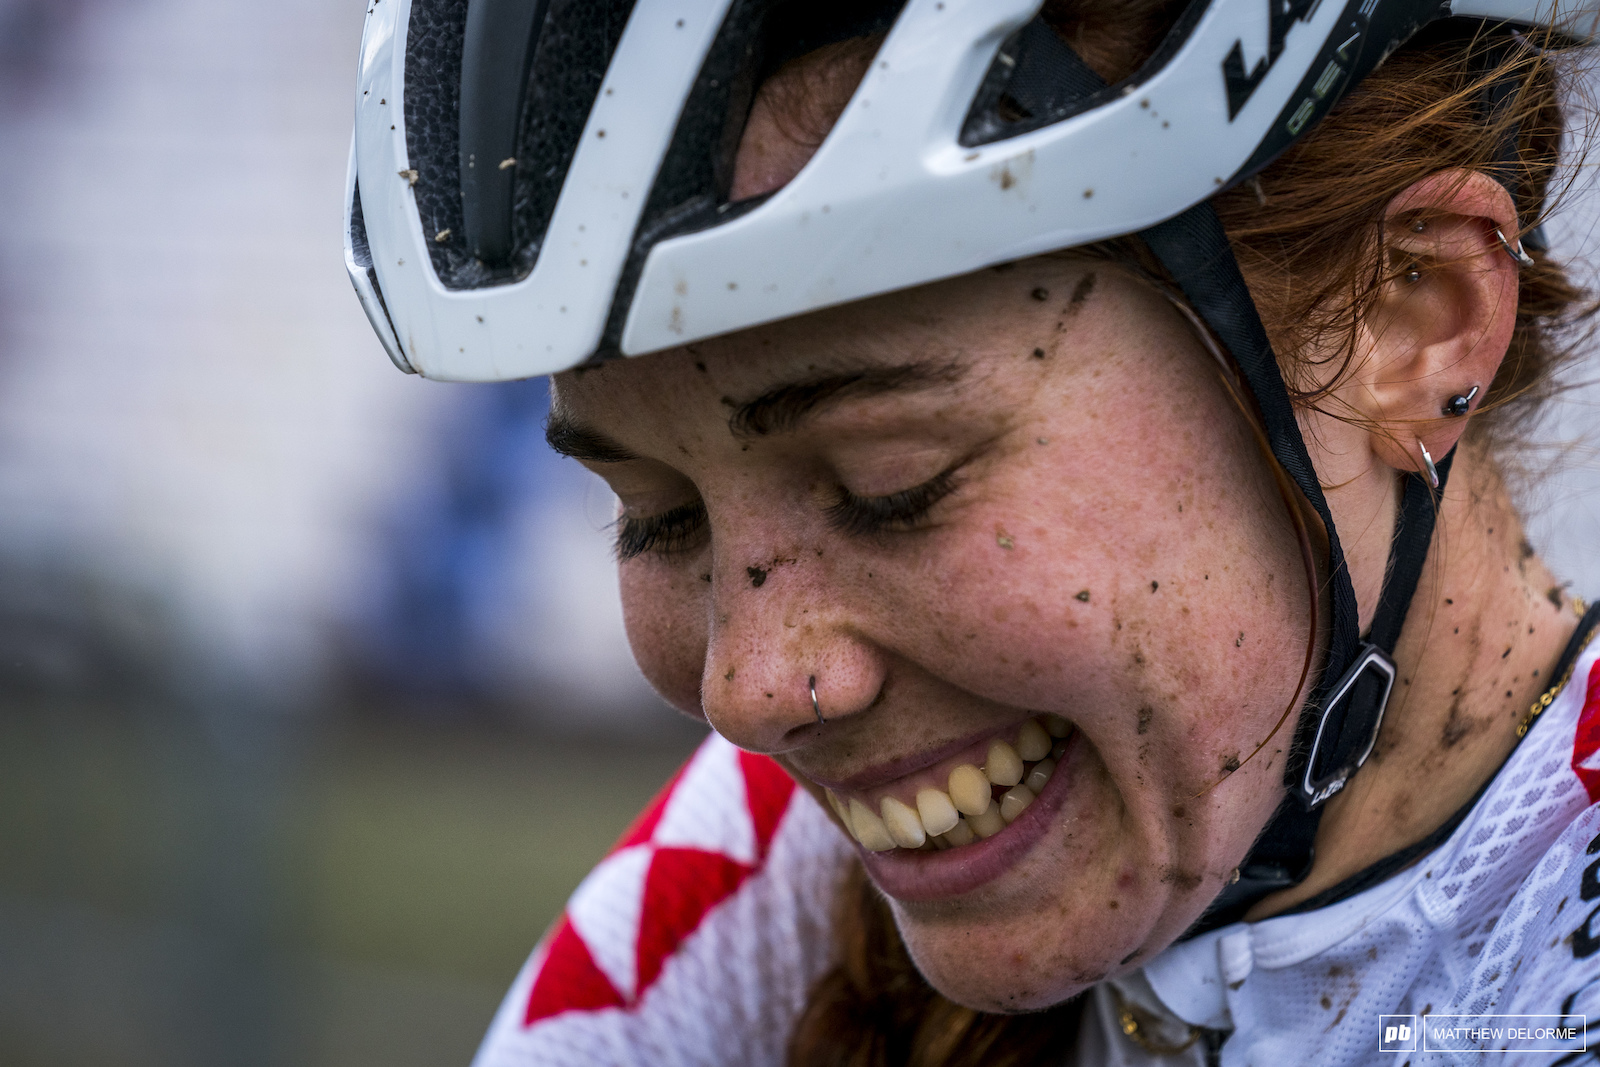 Isla Short had quite a bit to smile about at the end of her race.